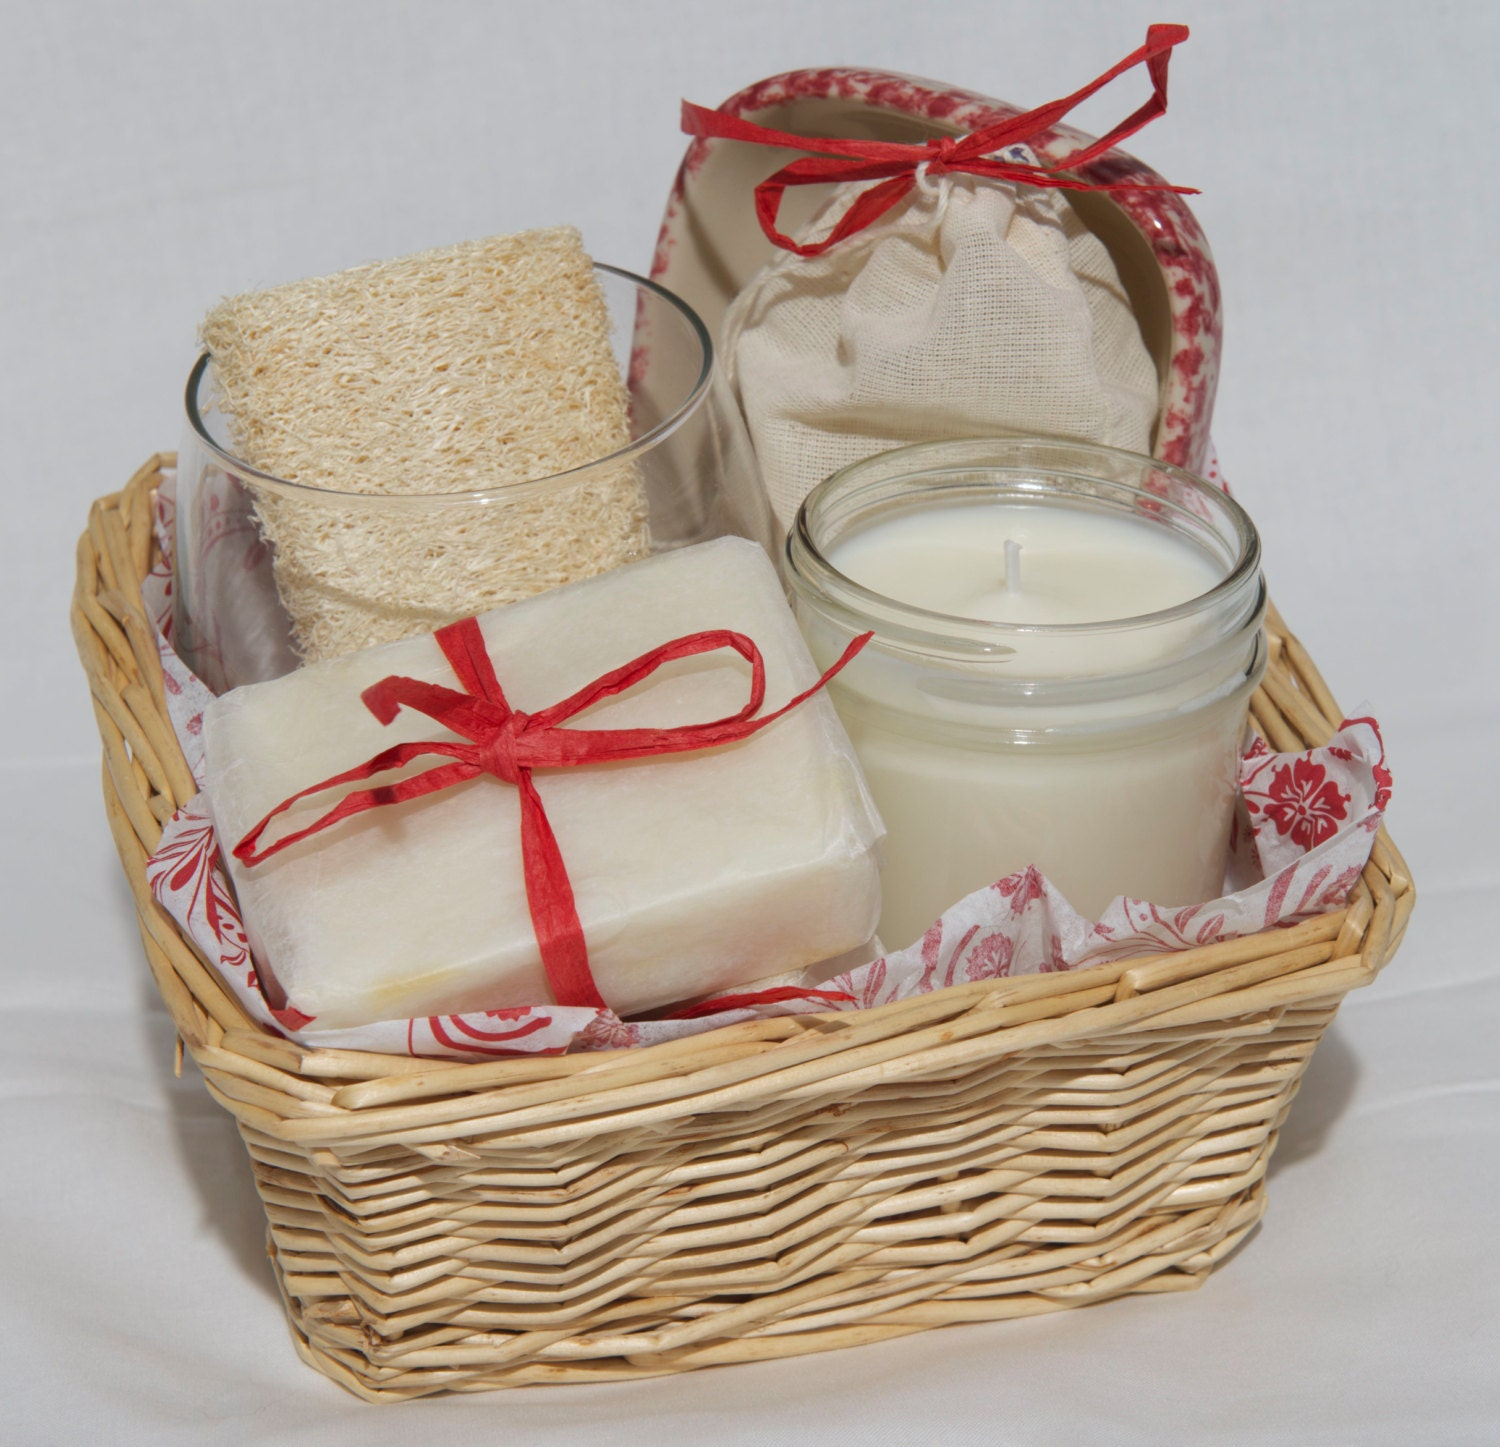 Handmade Basket Gifts : Valentine soap spa gift set basket soy candle and